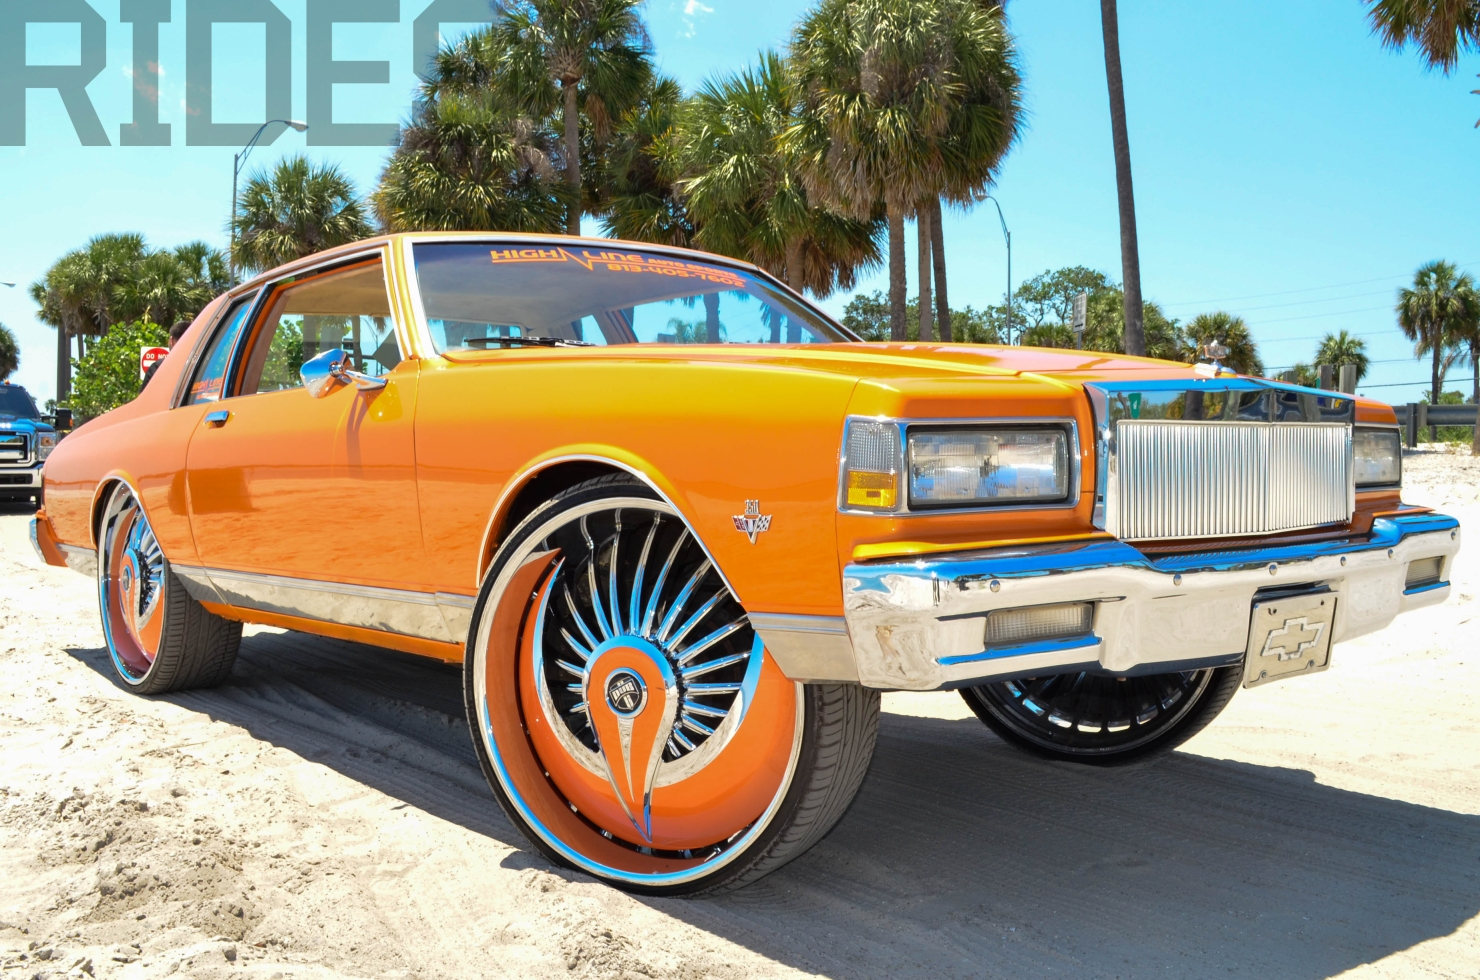 Emblemskate blogspot as well File Caprice bubble in addition Chevrolet Impala besides 391336419537 together with Collab With Rides Magazine High Line. on 96 impala on 24 inch rims